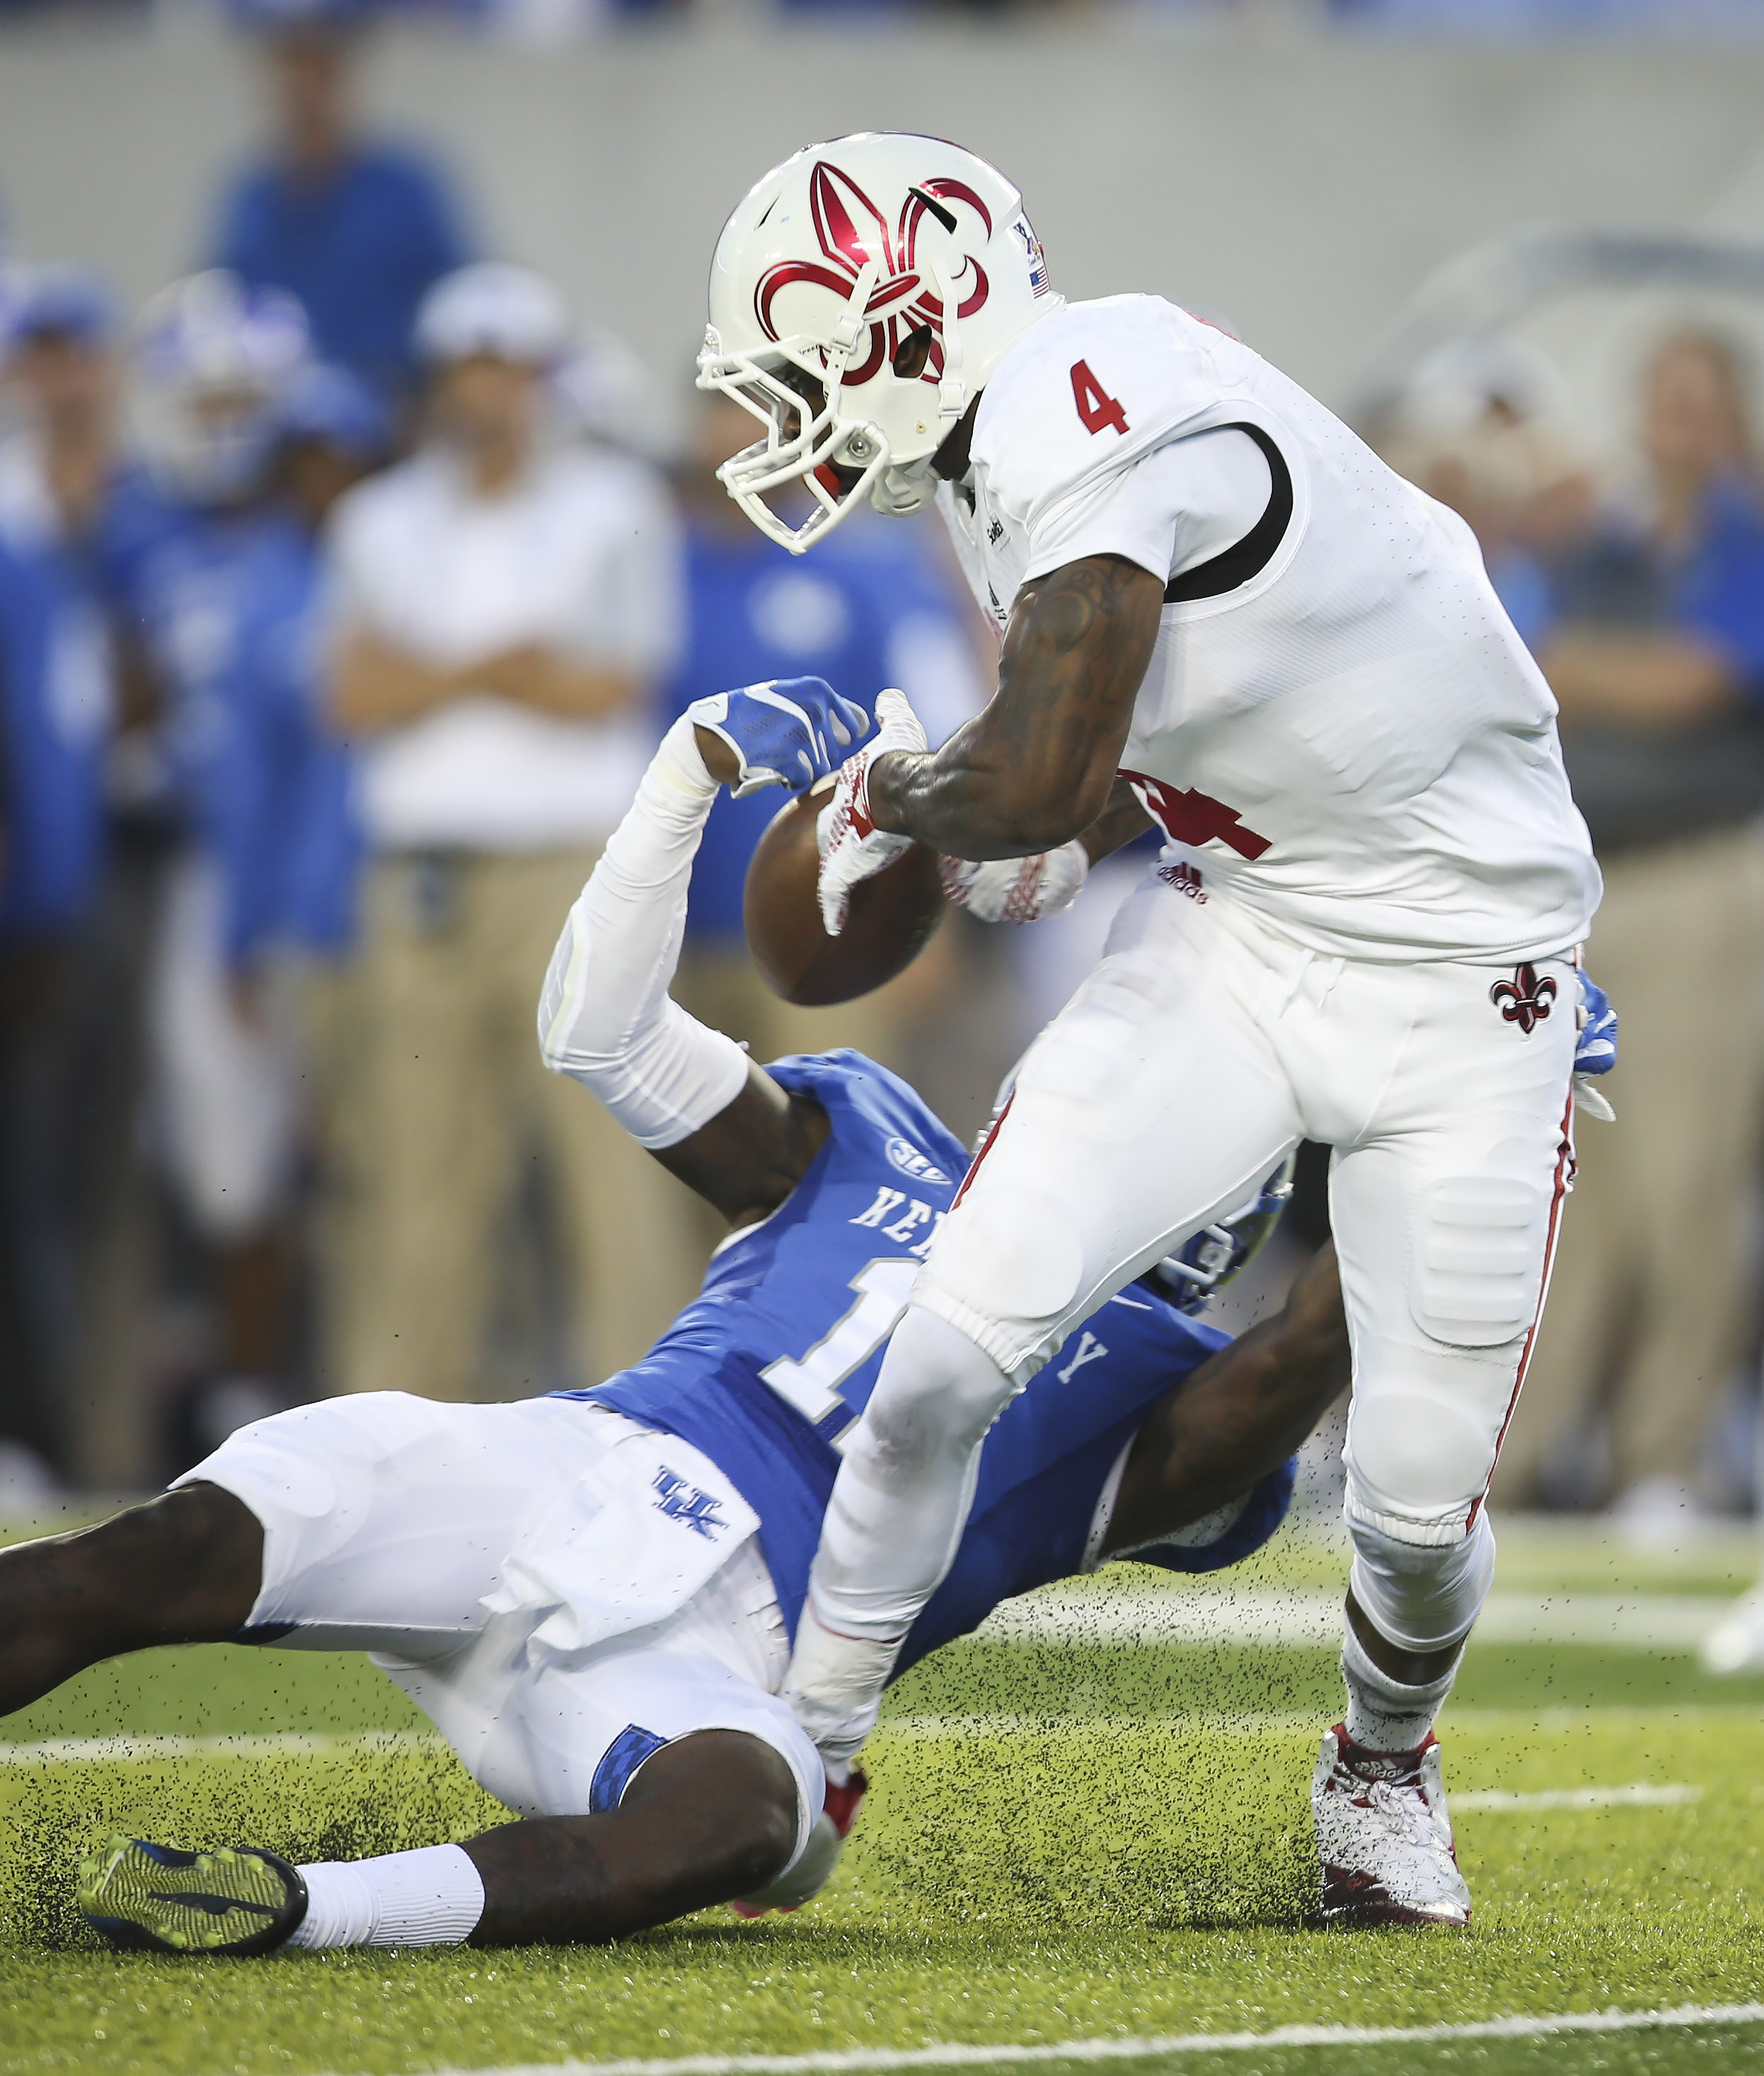 Louisiana-Lafayette wide receiver Jamal Robinson (4) has the ball stripped by Kentucky cornerback J.D. Harmon, which resulted in a turnover, during the first half of an NCAA college football game in Lexington, Ky., Saturday, Sept. 5, 2015. (AP Photo/David